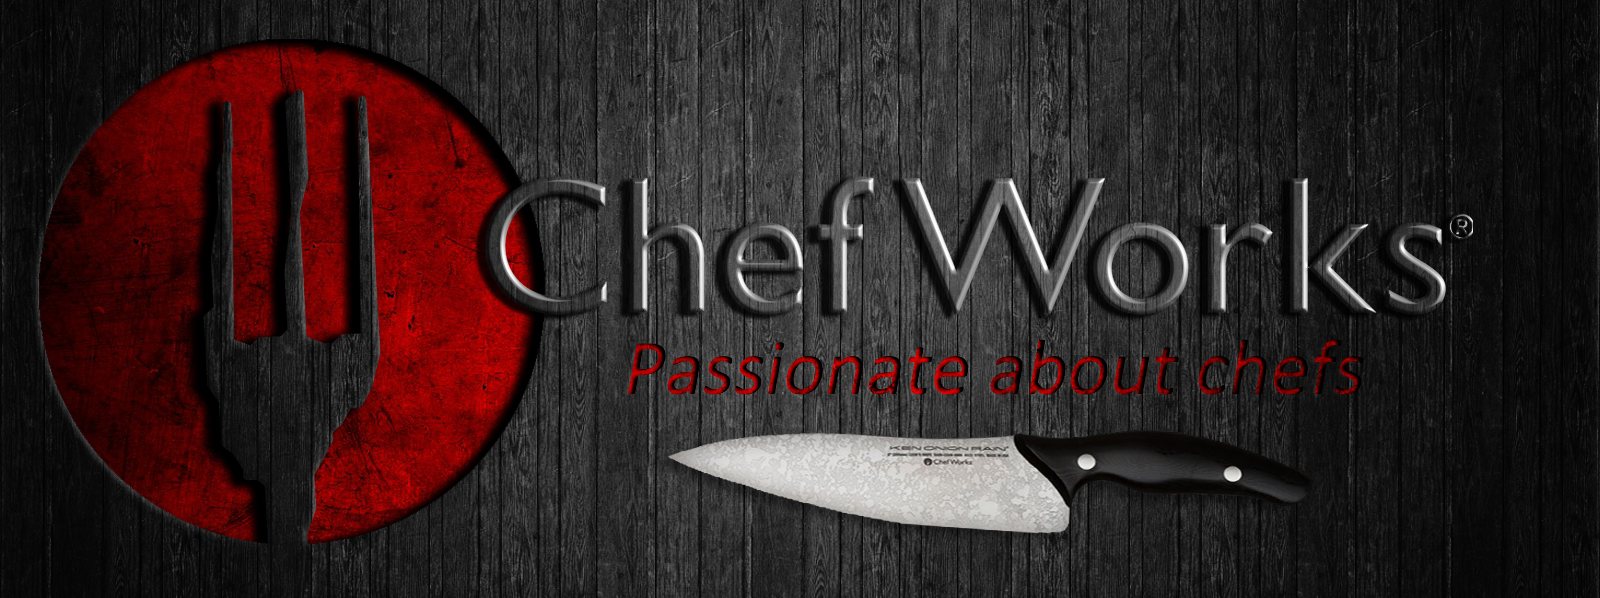 Chefworks / chefstyle.gr